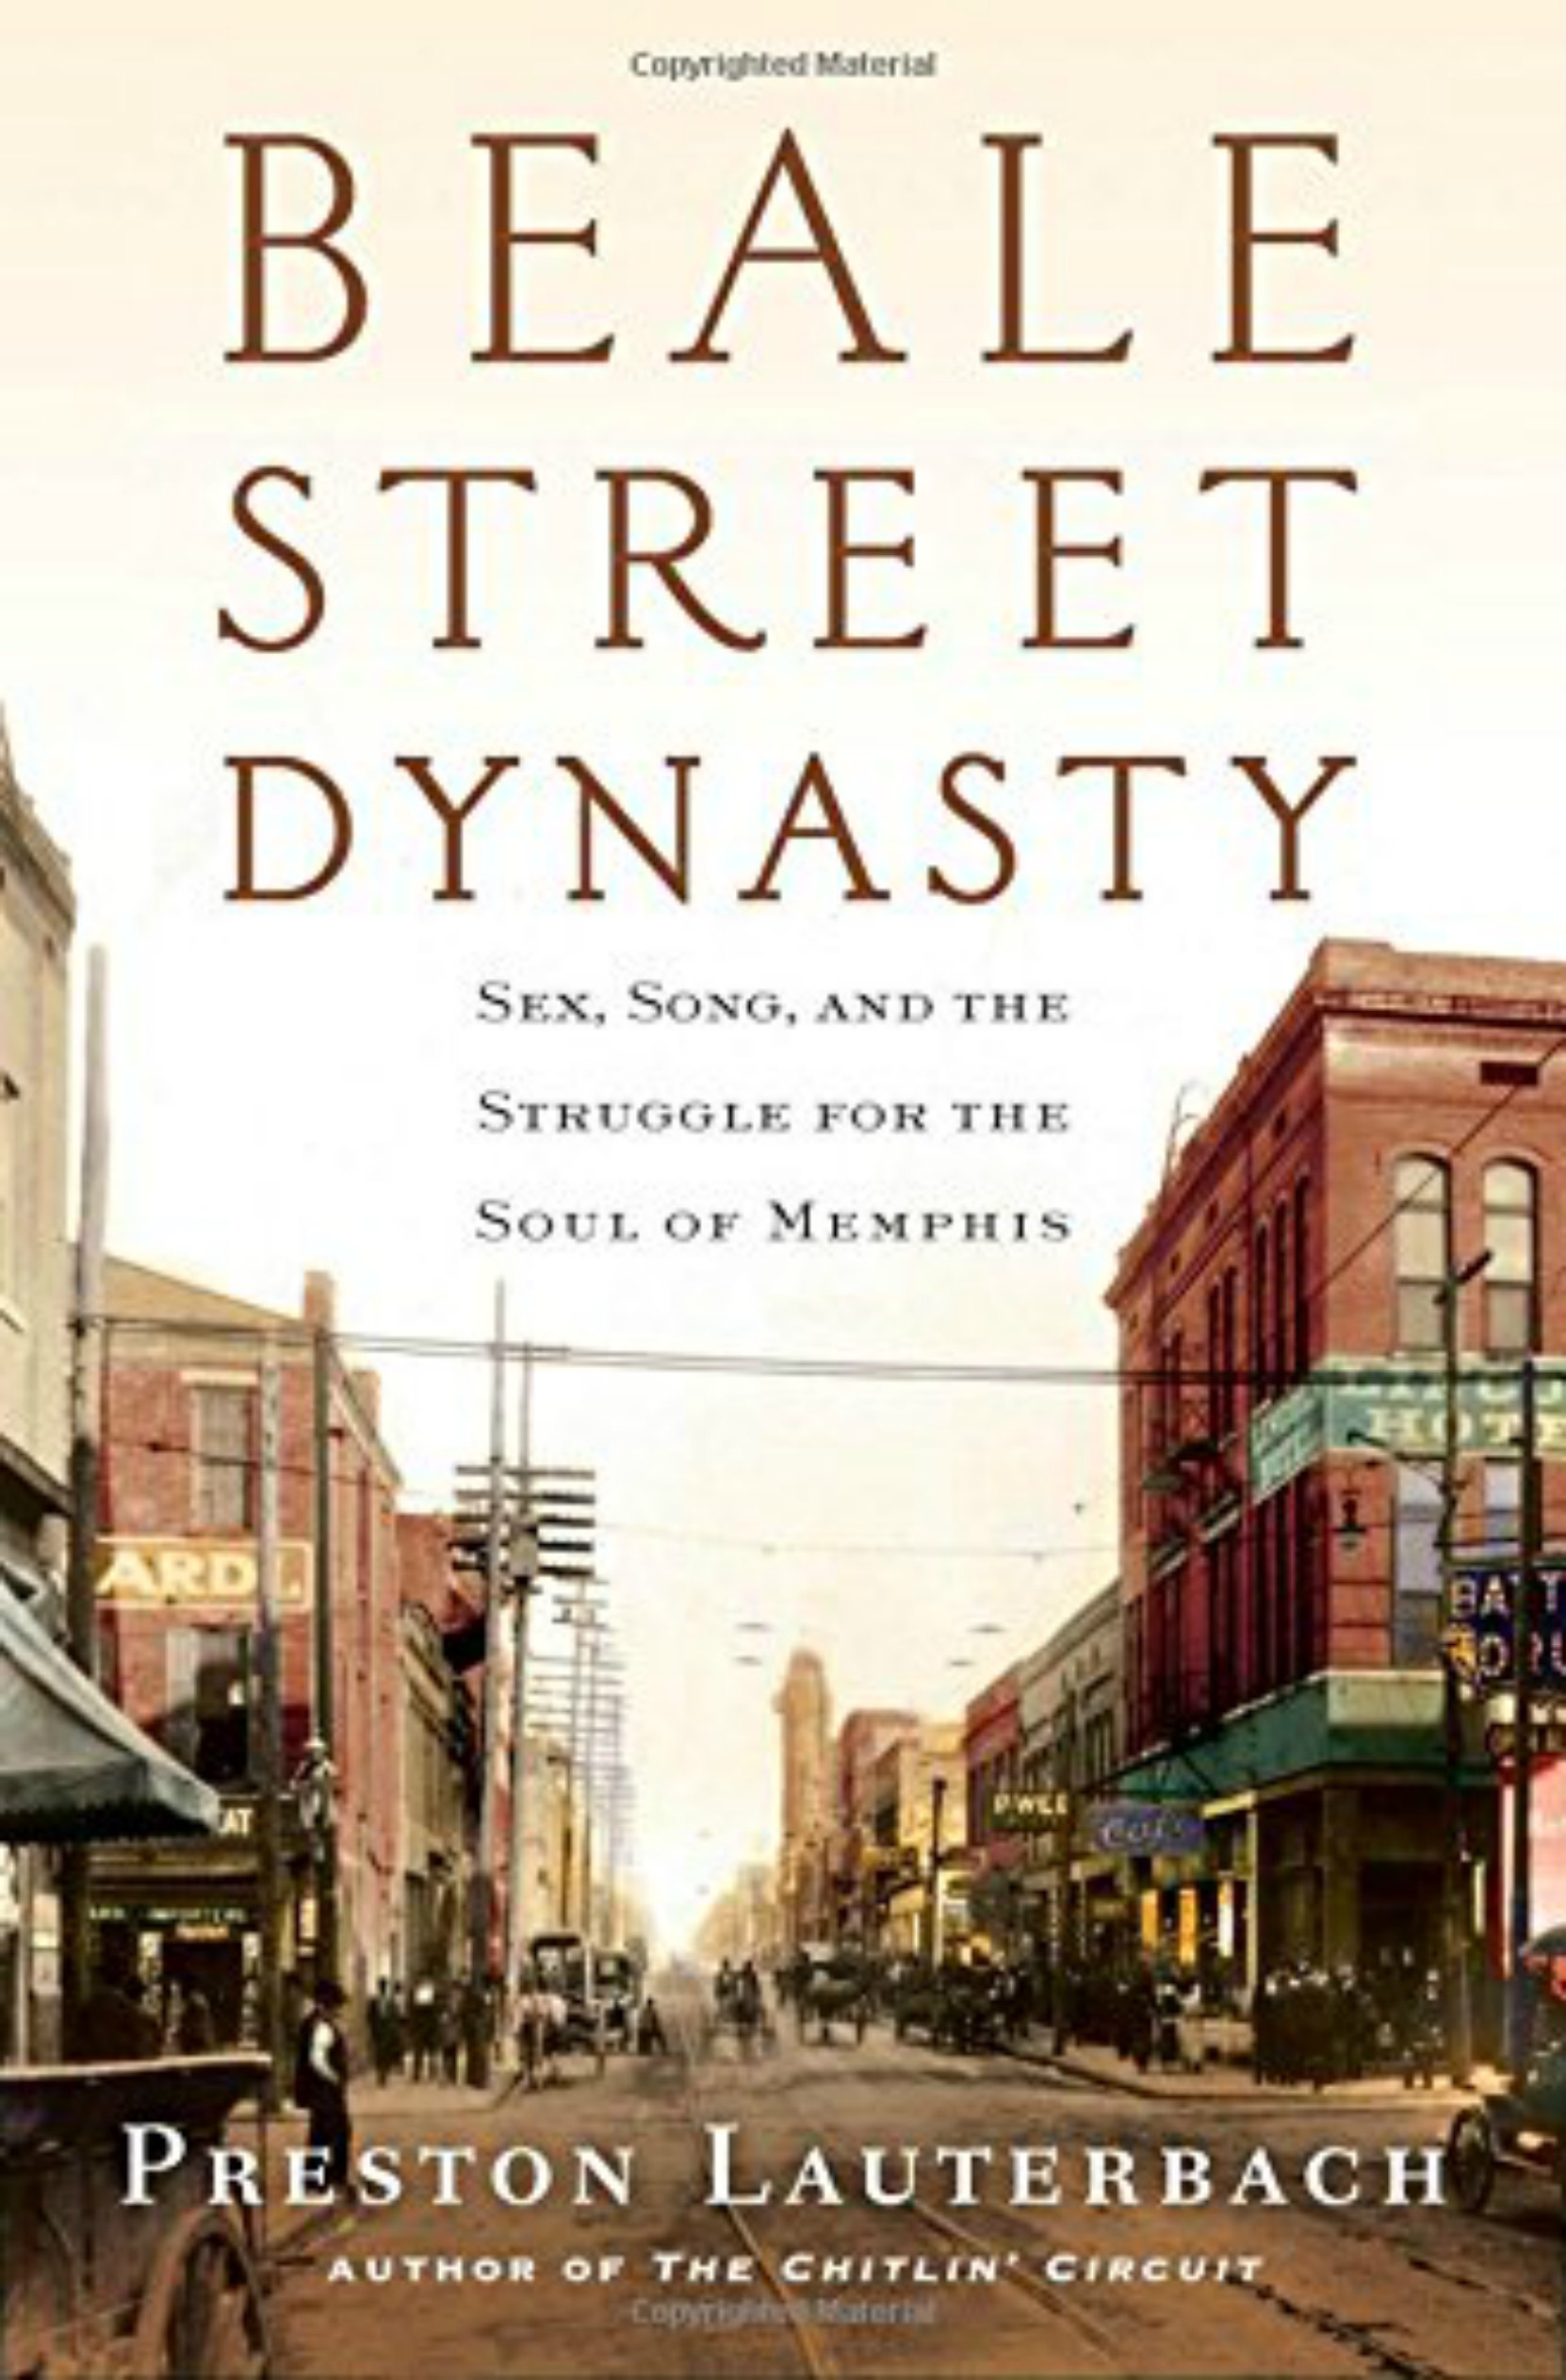 Preston Lauterbach, Beale Street Dynasty, book cover